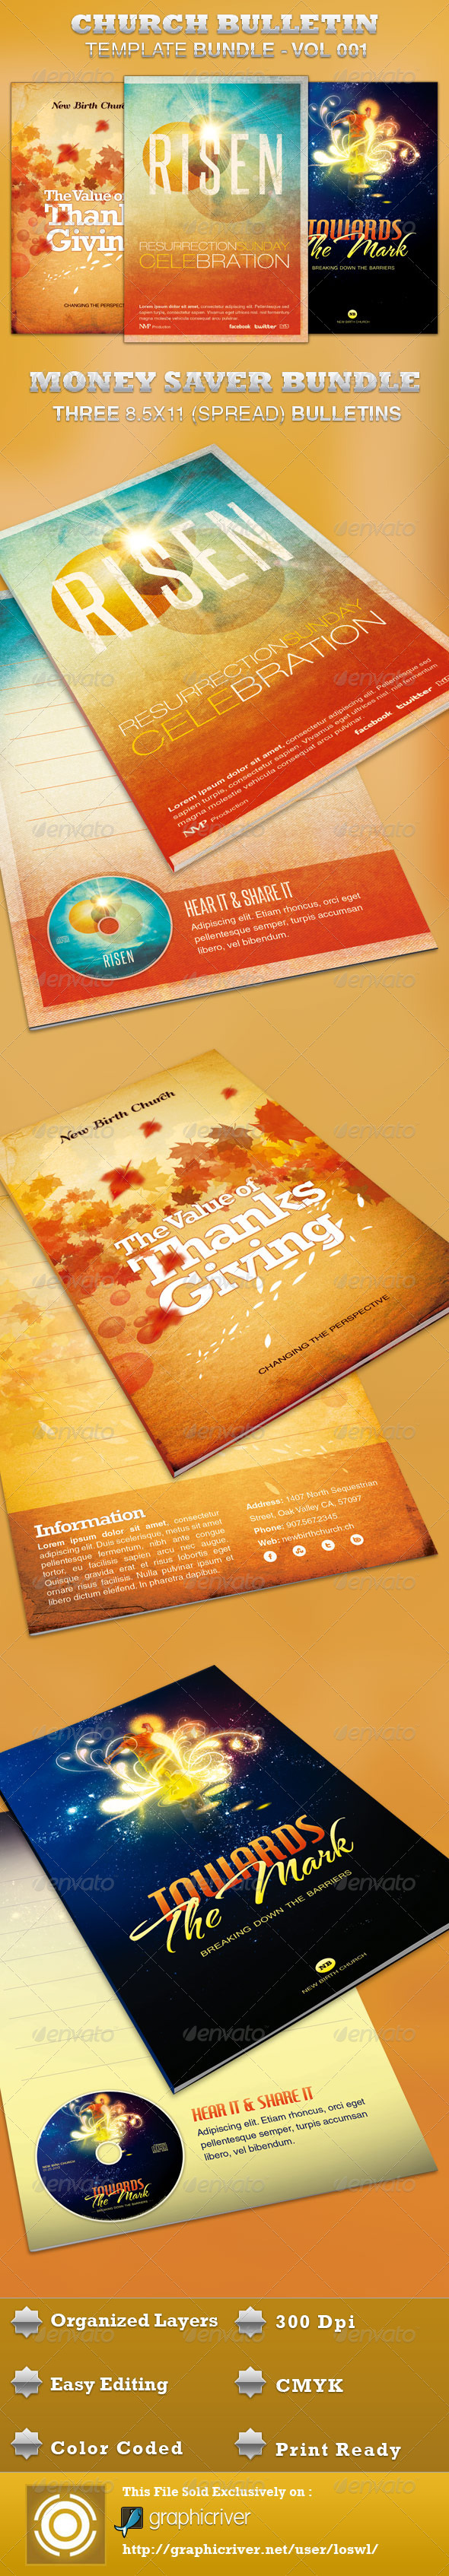 Church Bulletin Template Bundle-Vol 001 - Informational Brochures